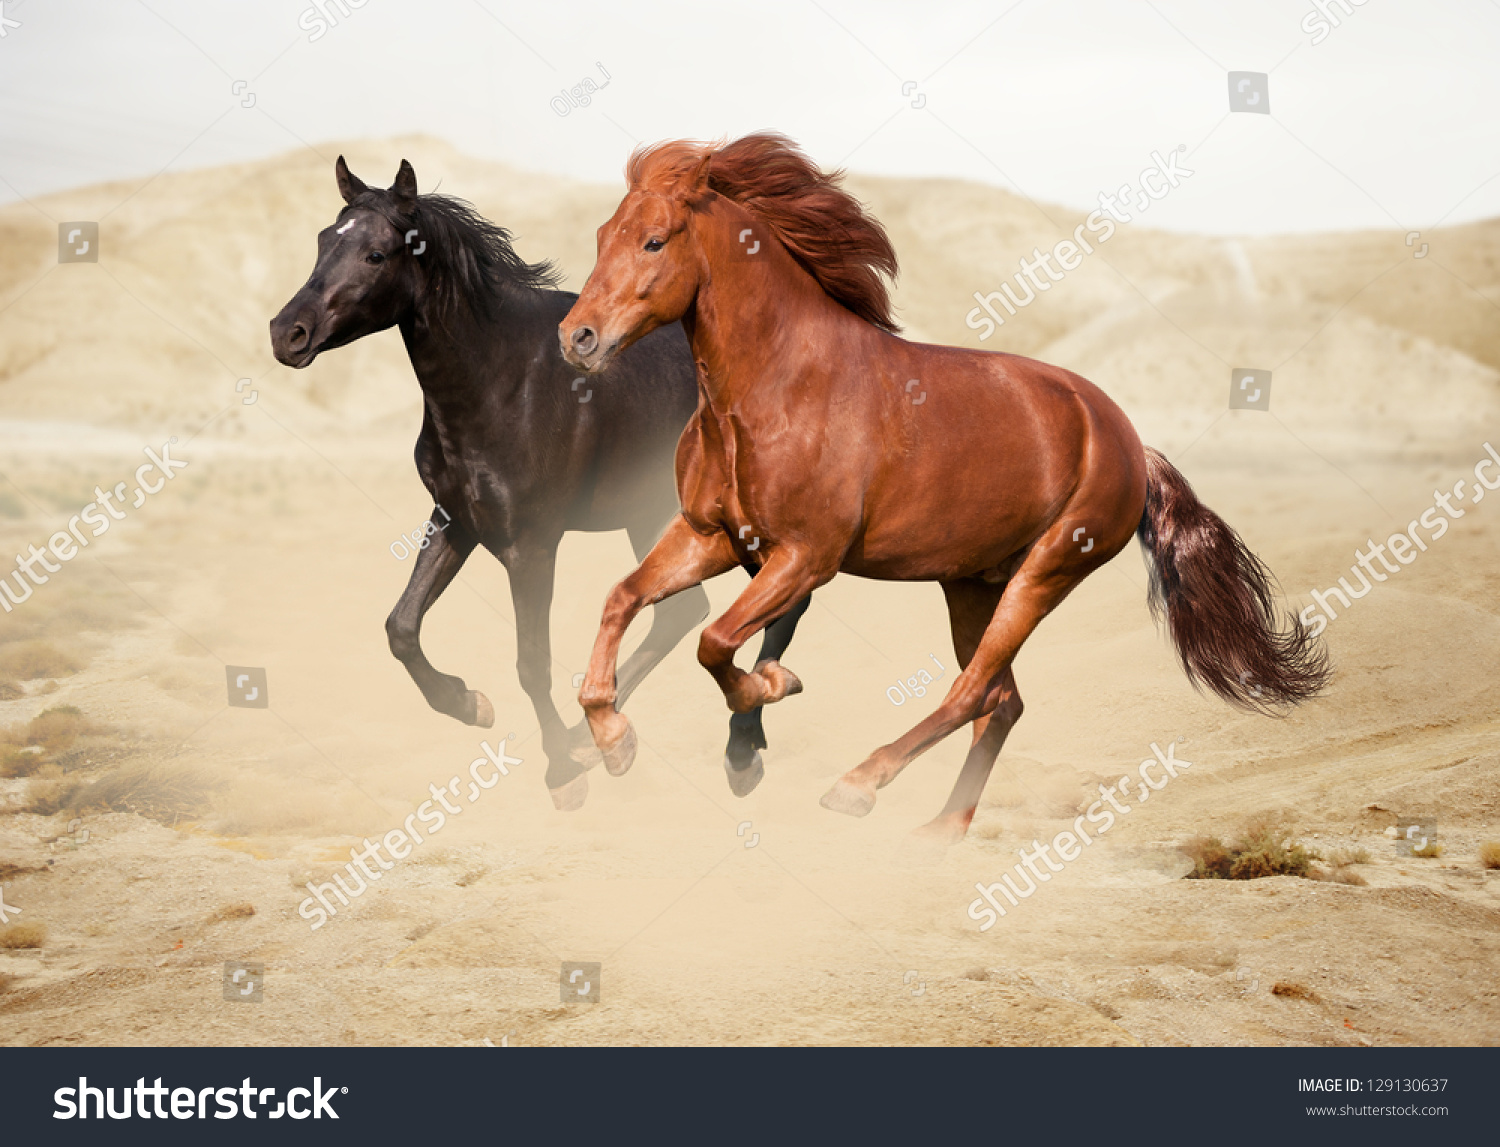 Purebred White Arabian Horse In Desert Stock Photo ...